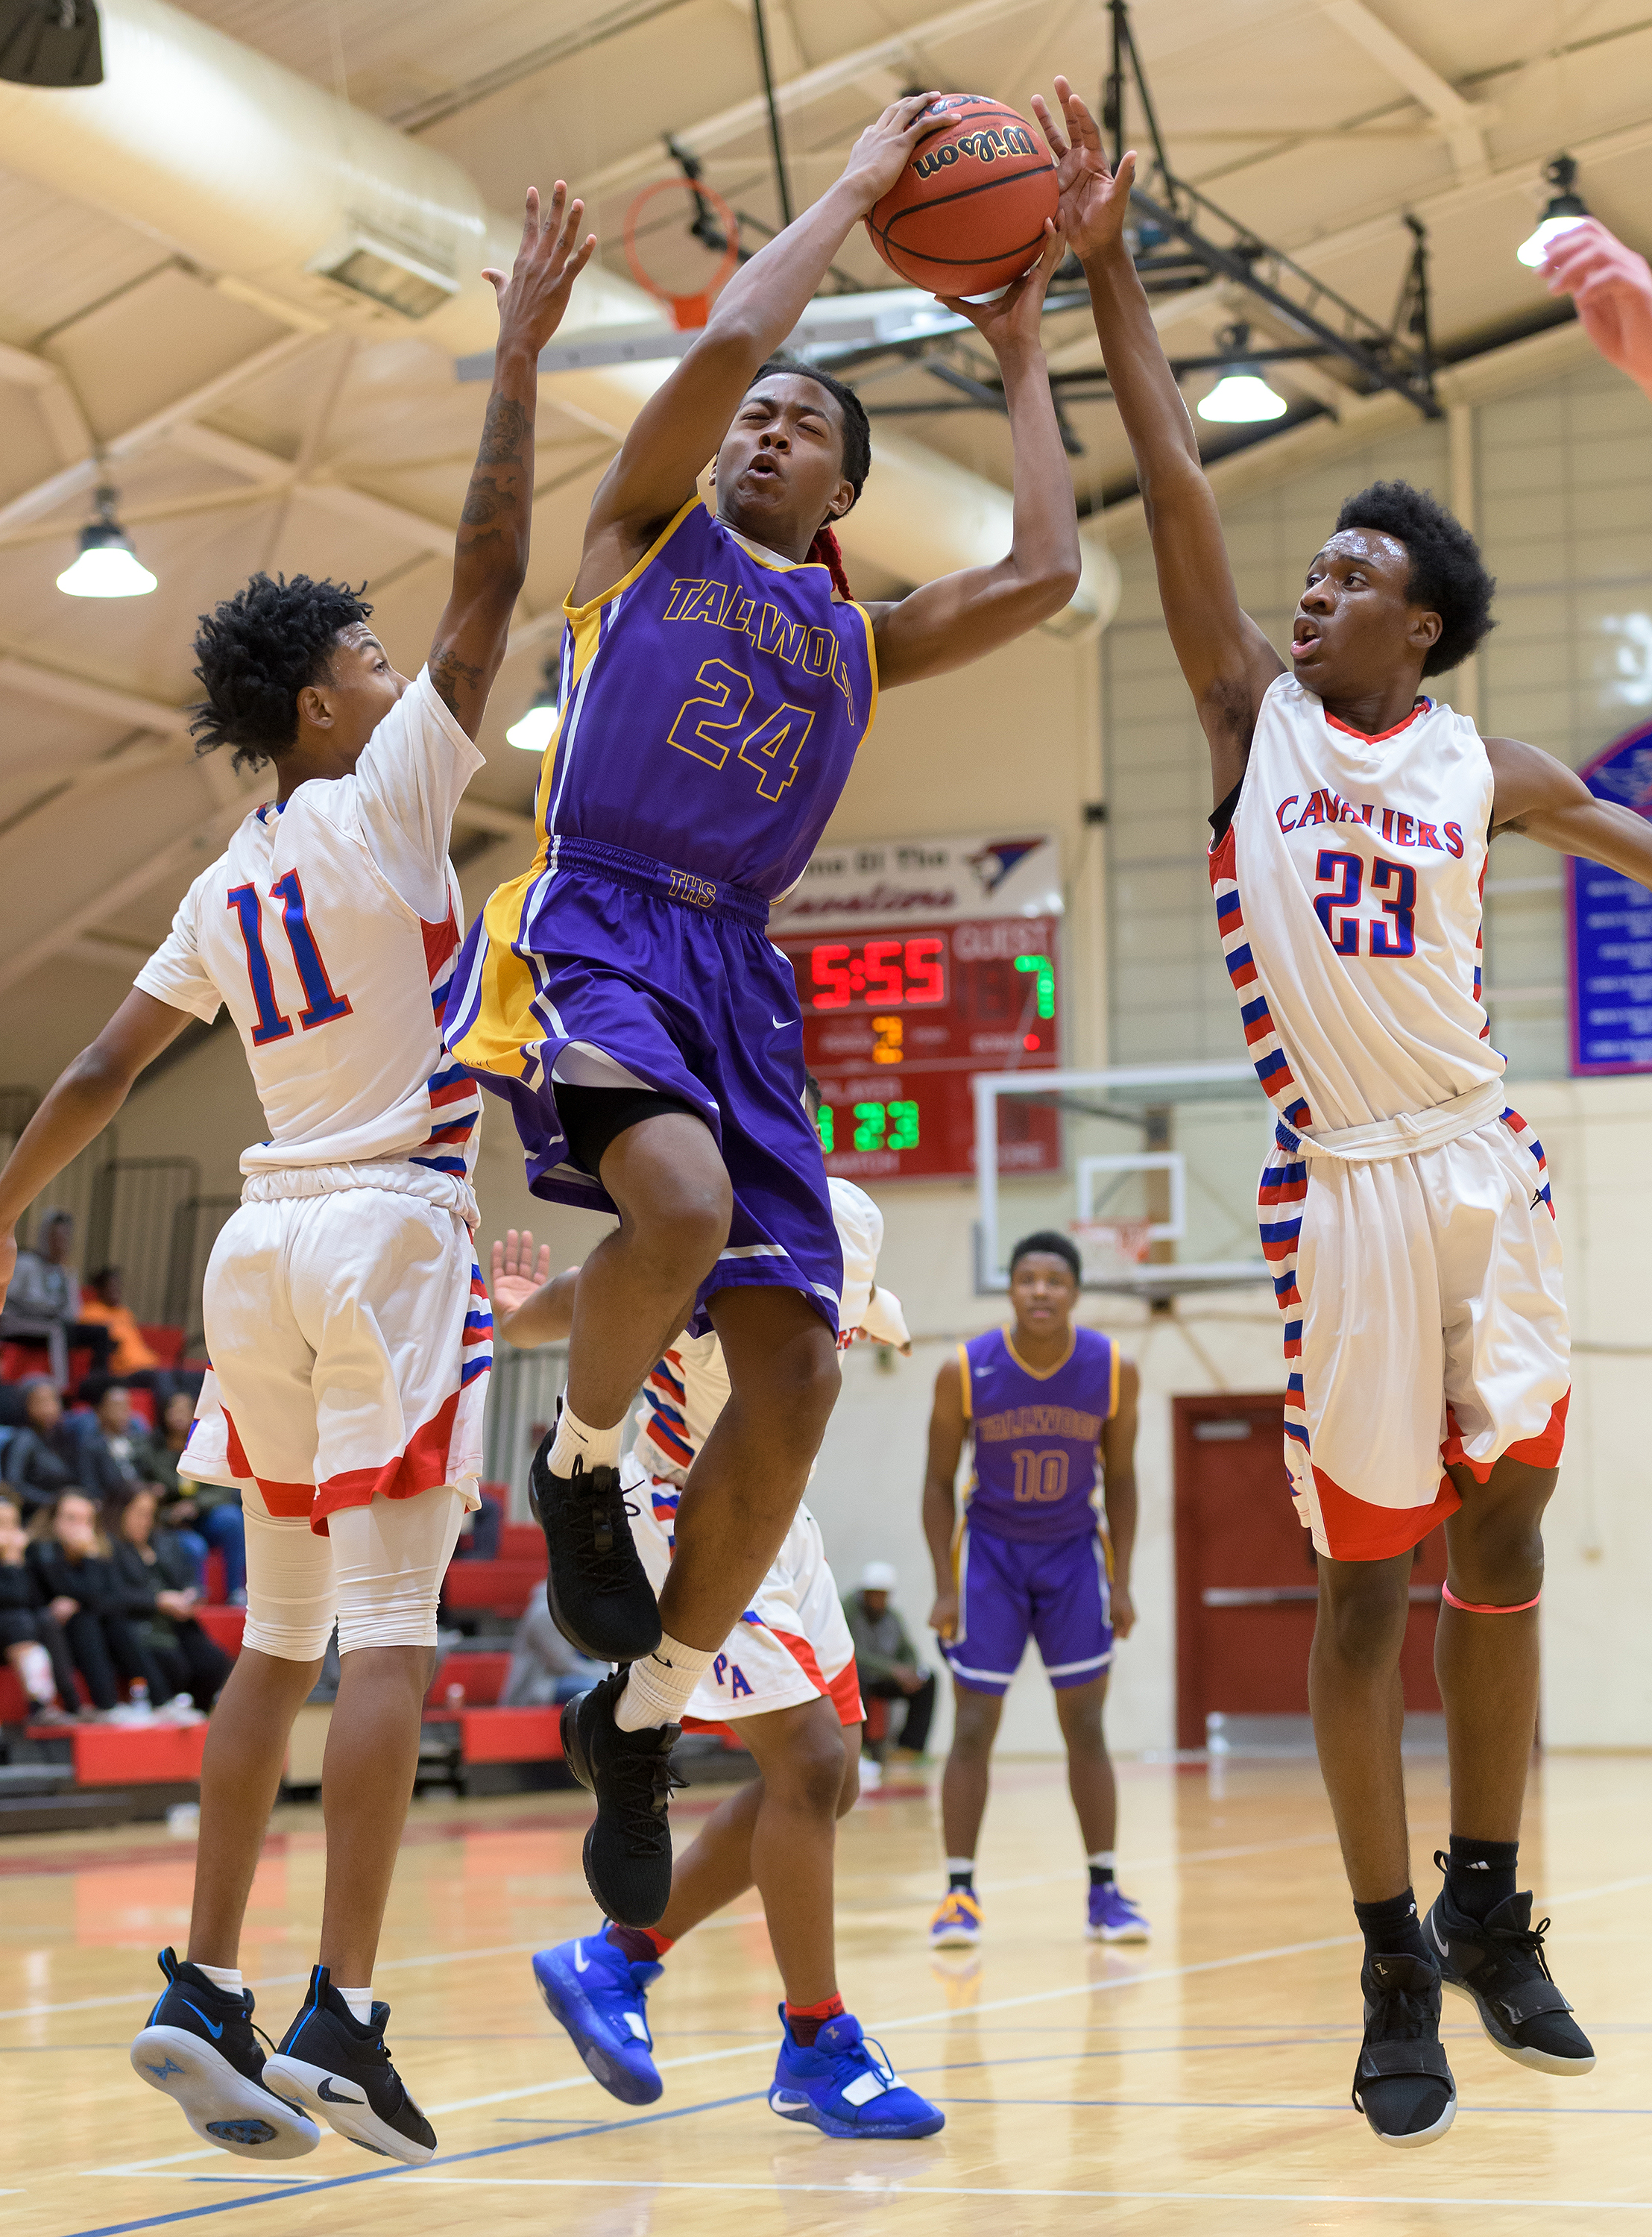 Game action from the Tallwood vs Princess Anne basketball game held on Tuesday, December 04, 2018 at the Princess Anne High School. Princess Anne defeated Tallwood 69 to 40.